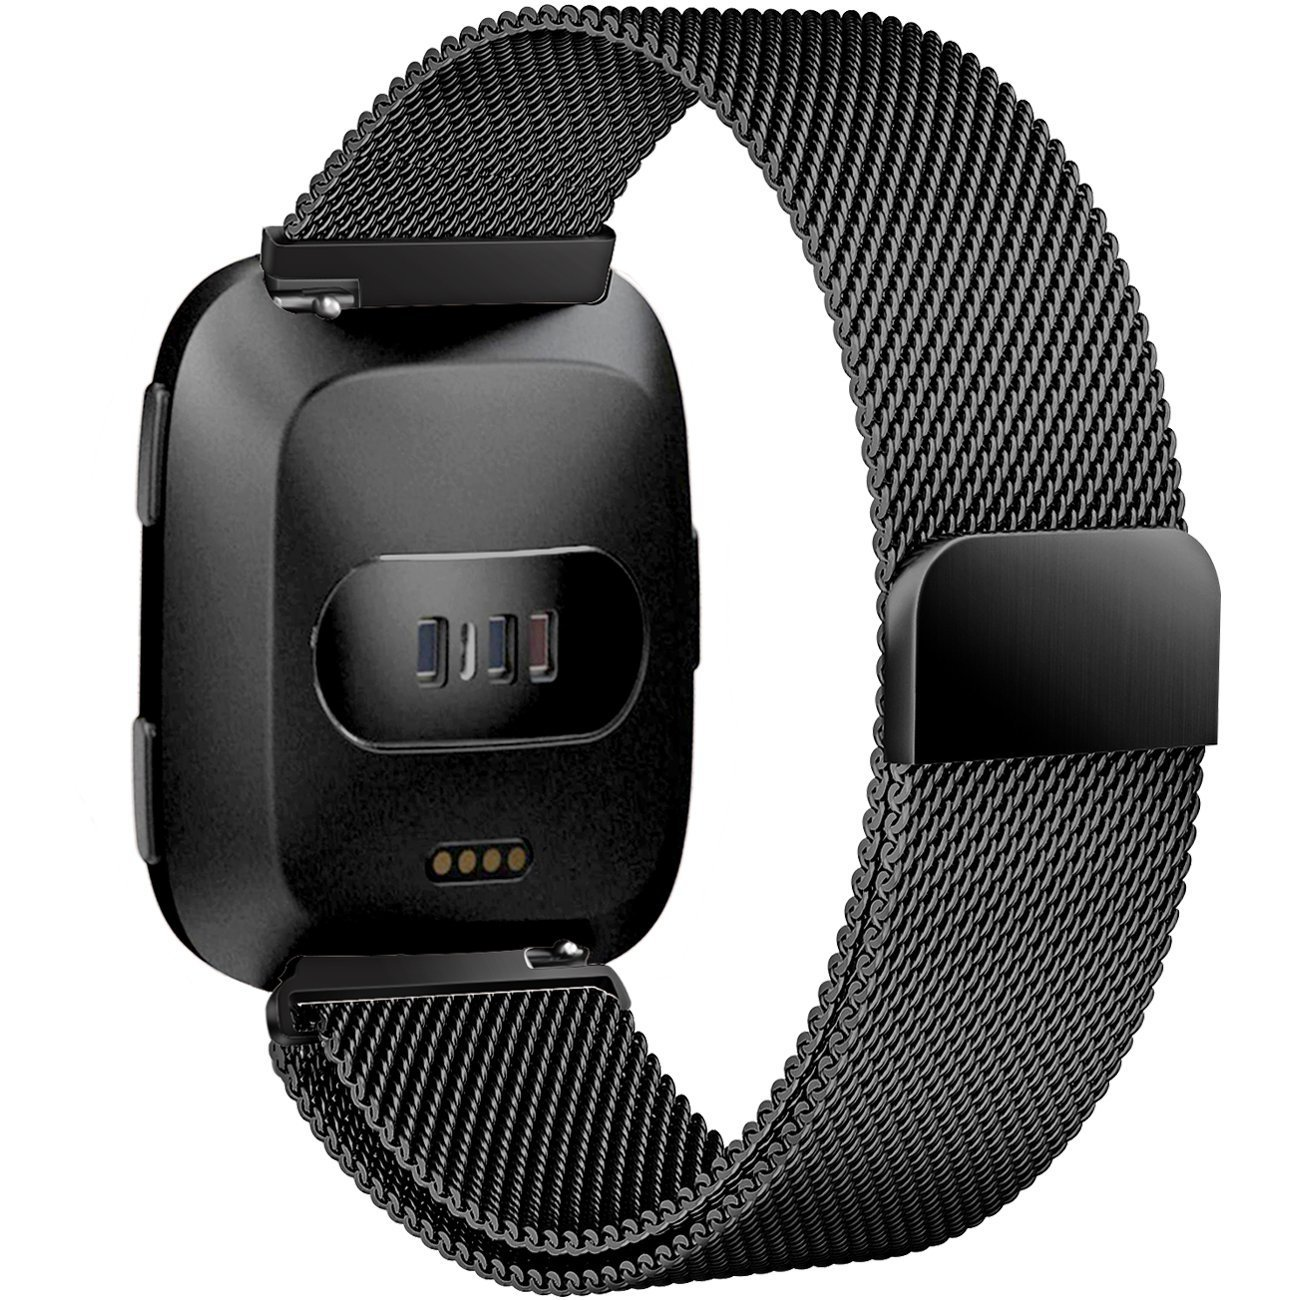 Fun Sponsor Fitbit Versa Strap Bands, Luxury Milanese Stainless Steel Adjustable Smart Watch Strap with Magnetic Closure for Fitbit Versa